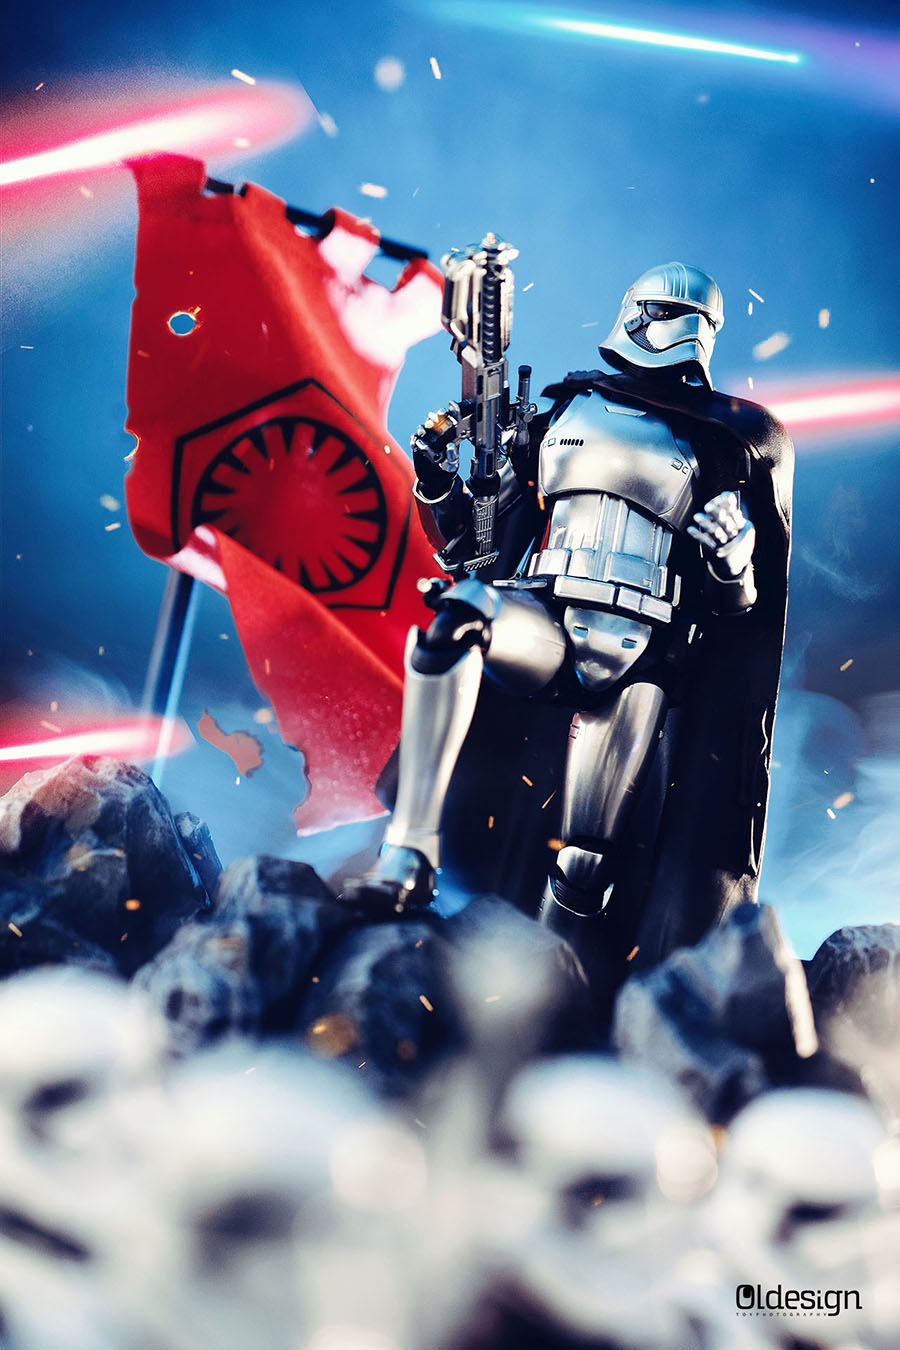 oldesign_captainphasma_01